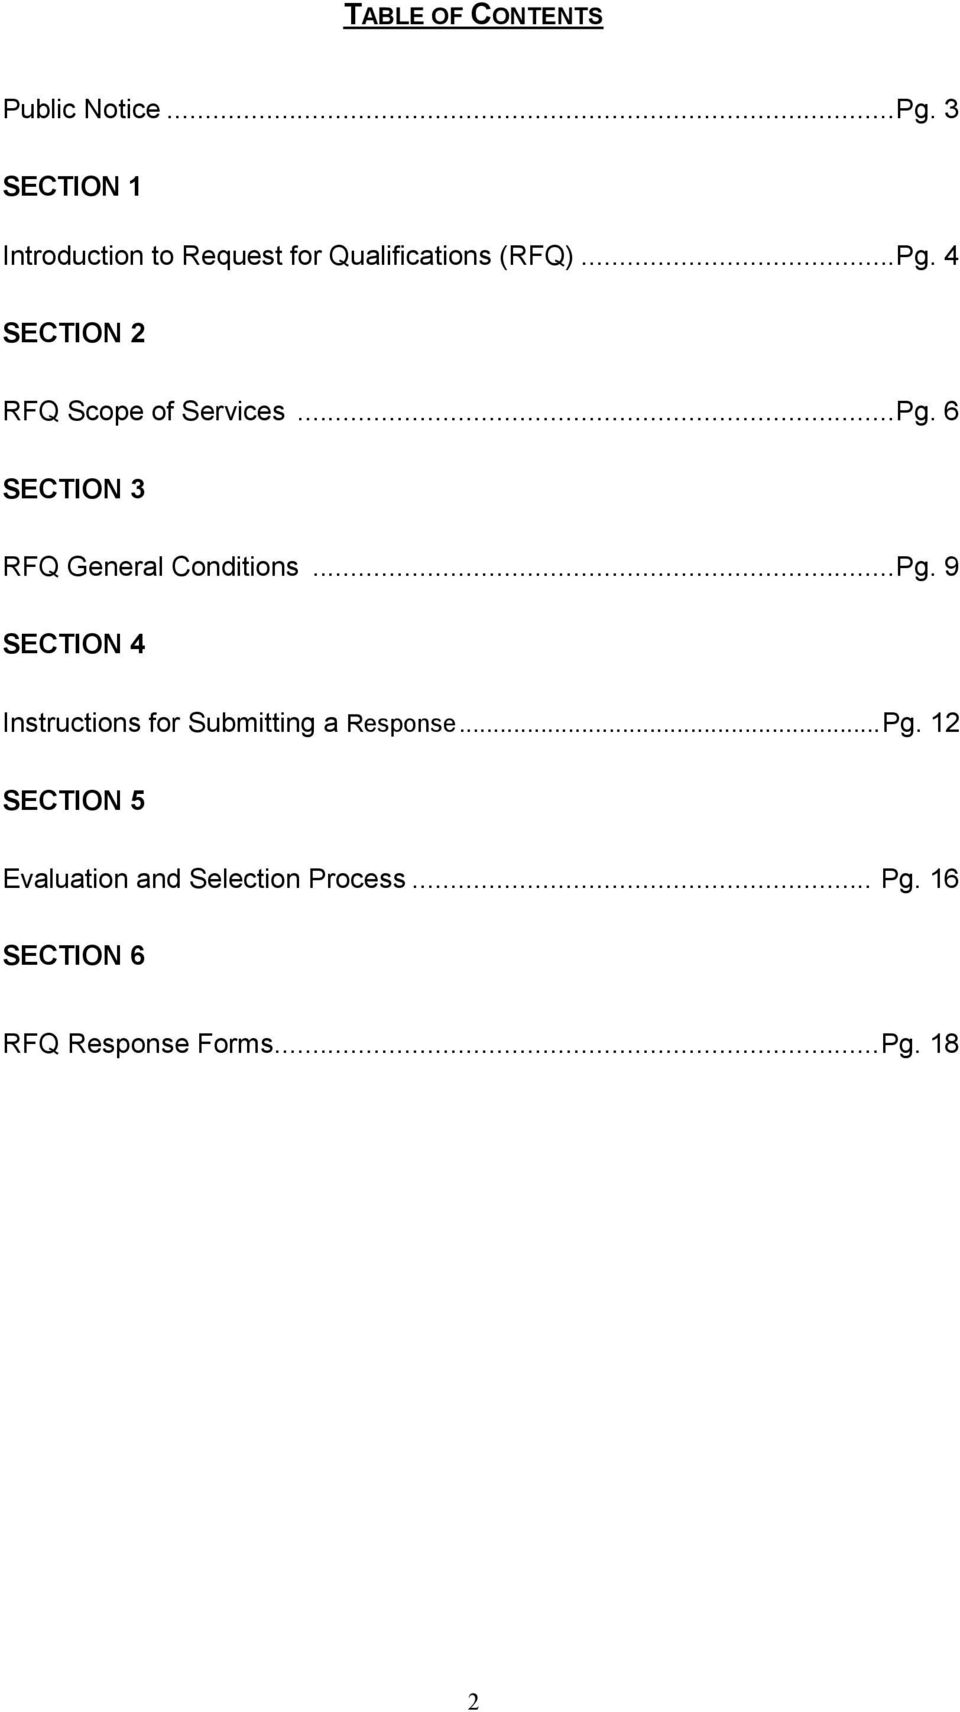 4 SECTION 2 RFQ Scope of Services...Pg.